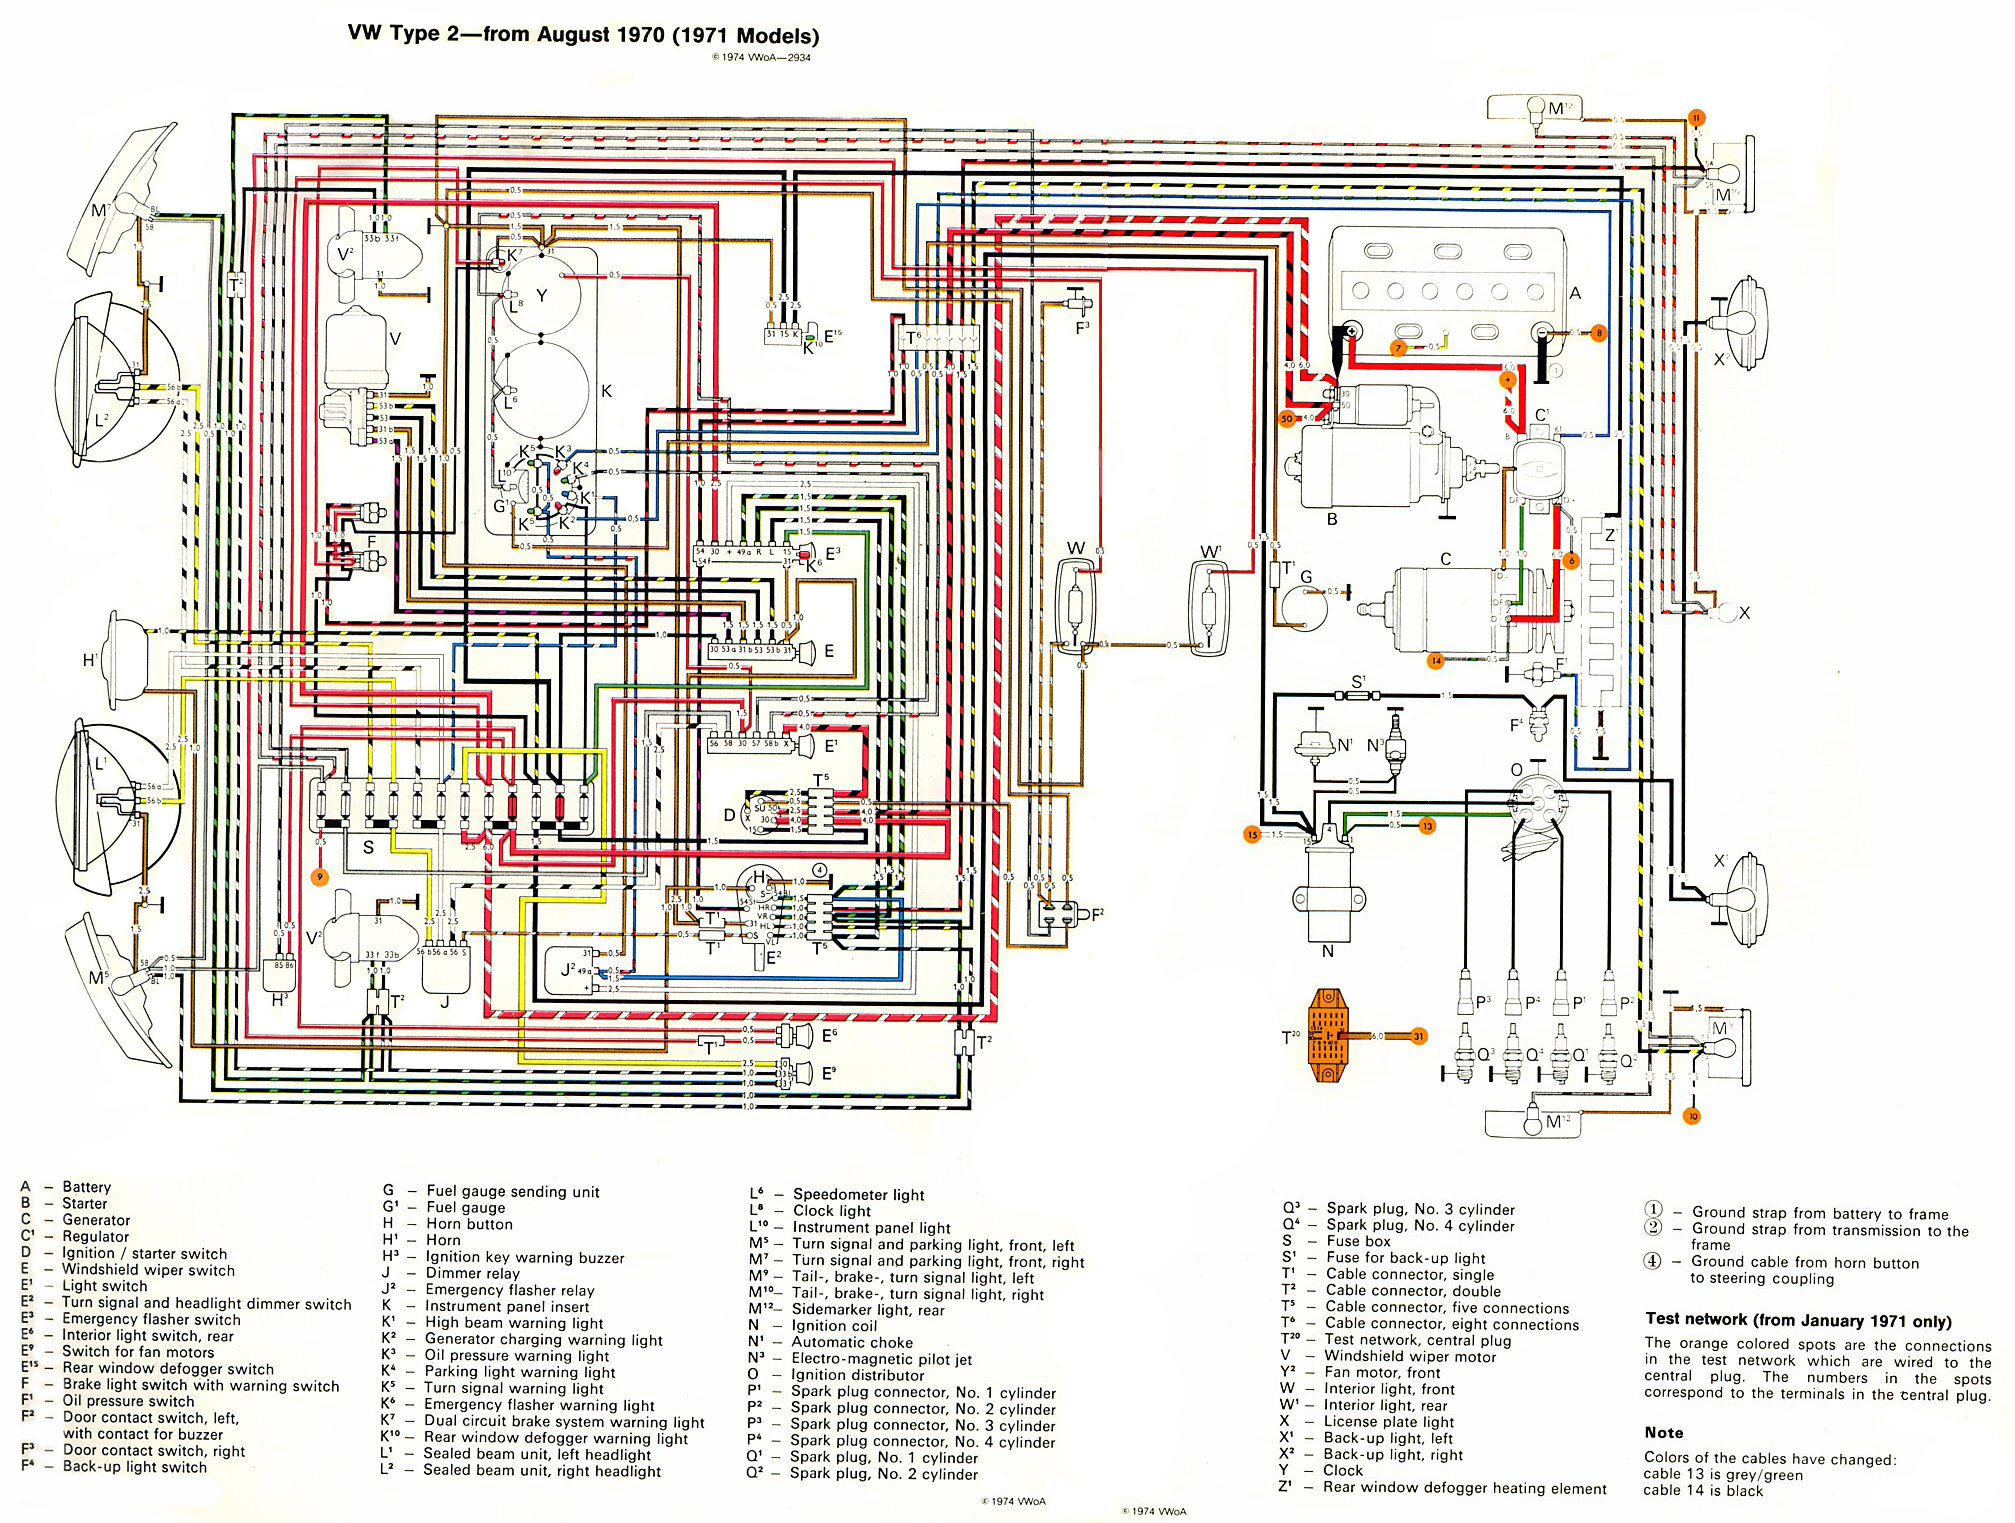 baybus_71_fixed wiring schematic diagram carrier package unit wiring diagram vw wiring diagram symbols at soozxer.org